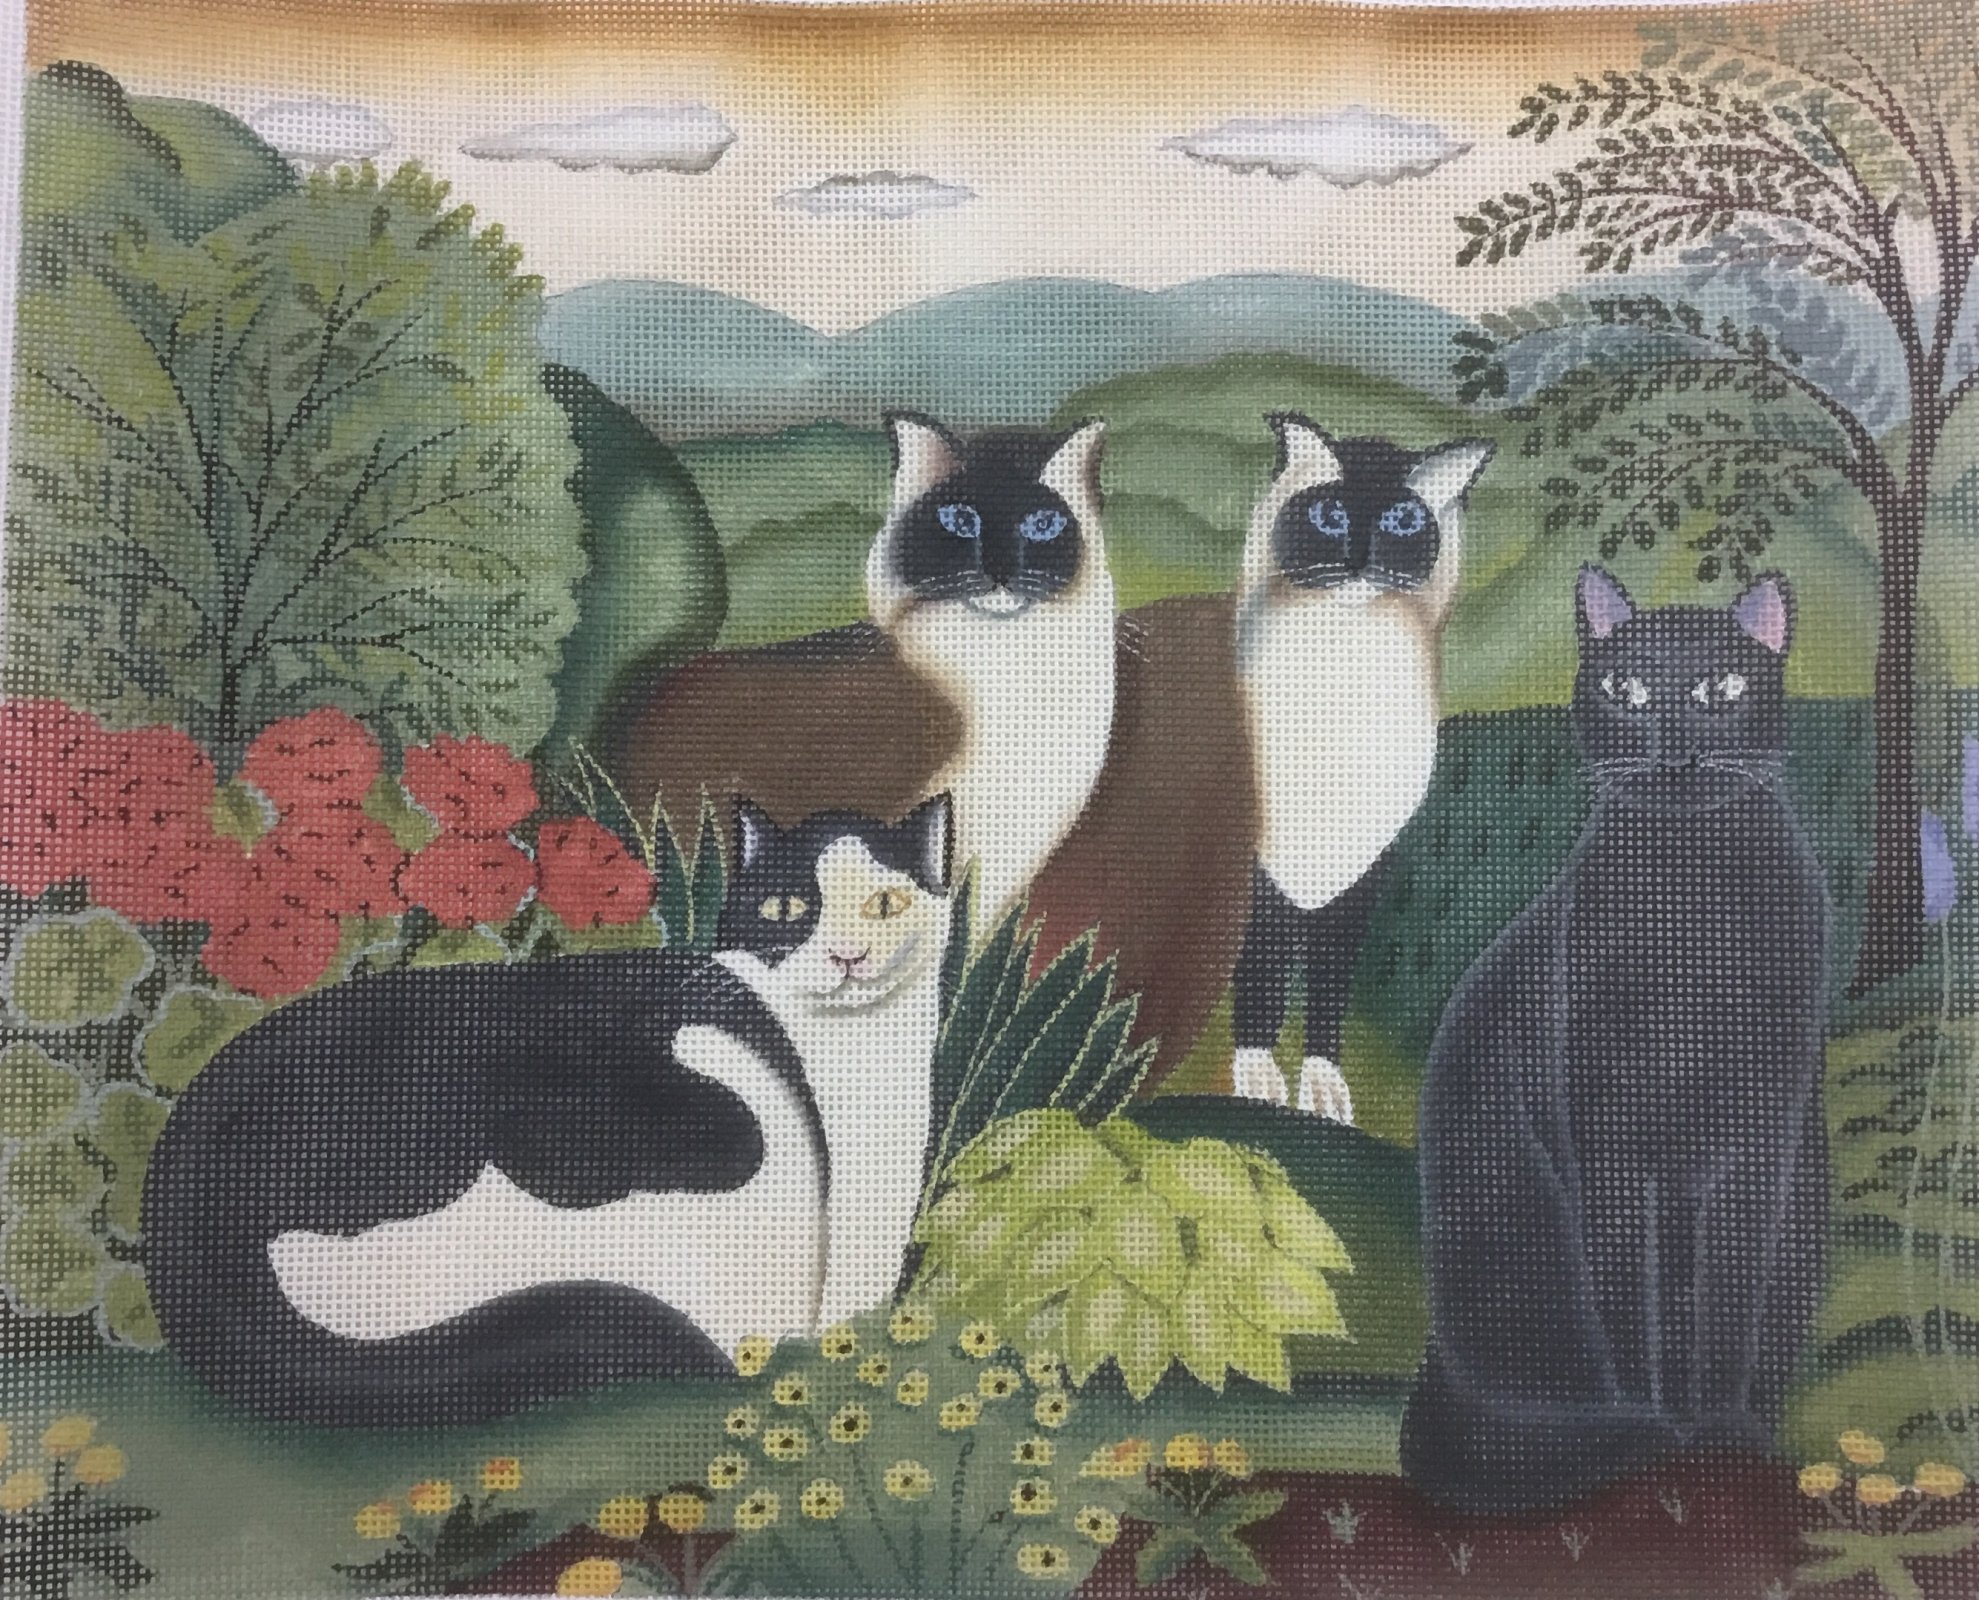 Four Cats,18 ct.,10x12